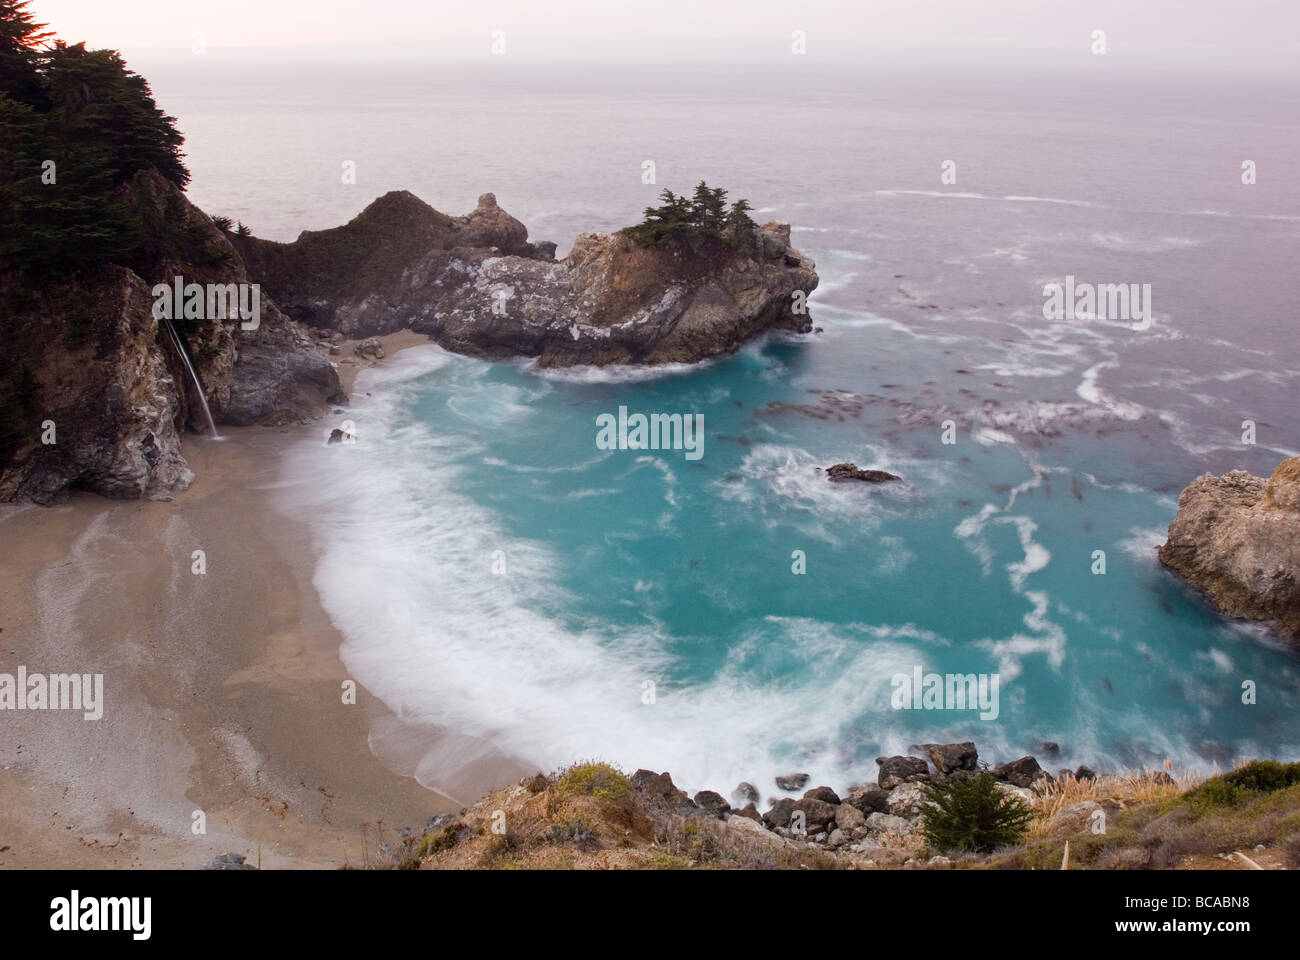 McWay Cove Waterfall at Julia Pfeiffer Burns State Park, - Stock Image